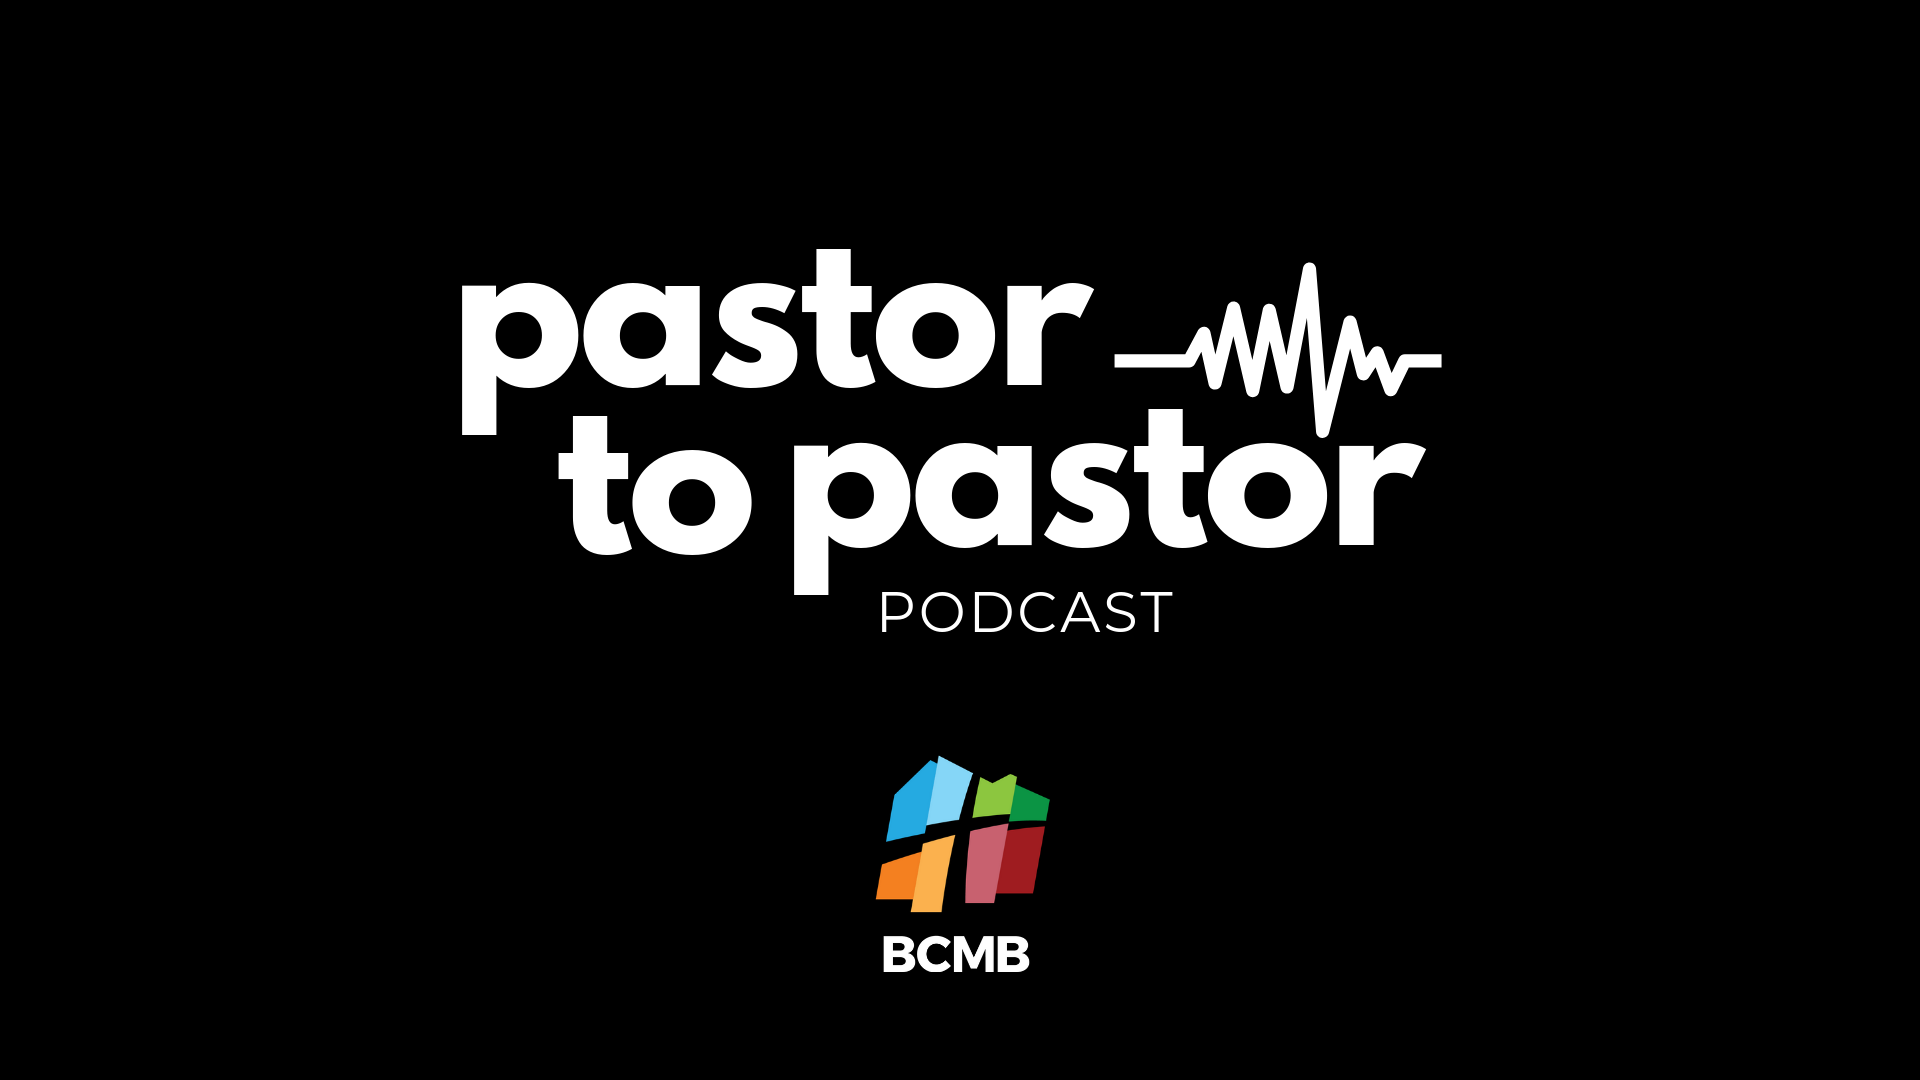 BCMB Pastor to Pastor Podcast